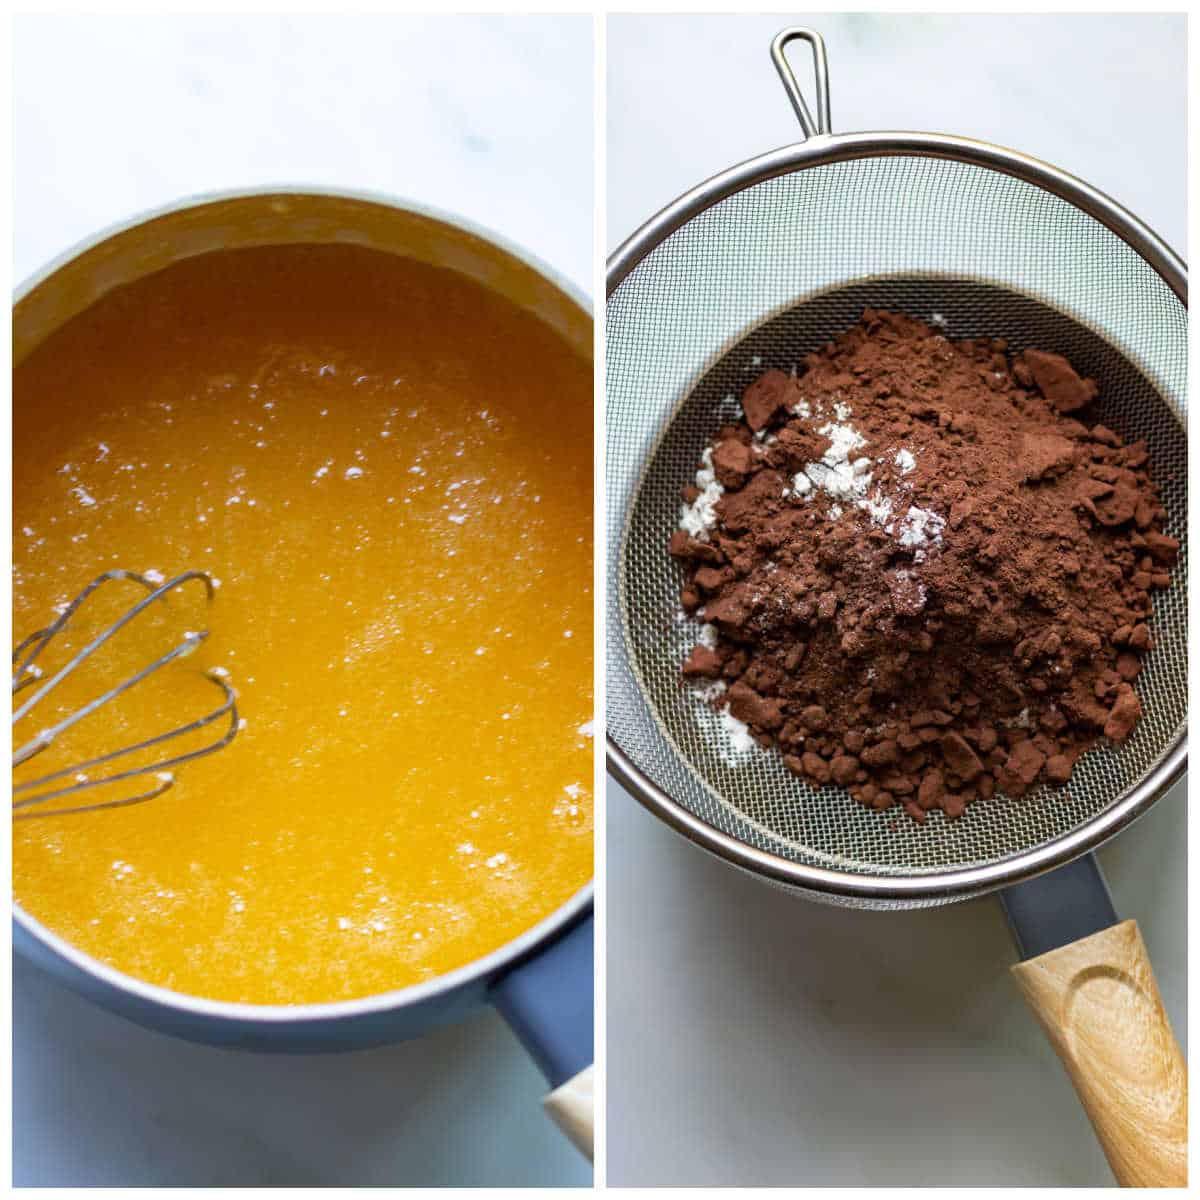 Melted butter and sugar in a pan, and sifting in the dry ingredients.